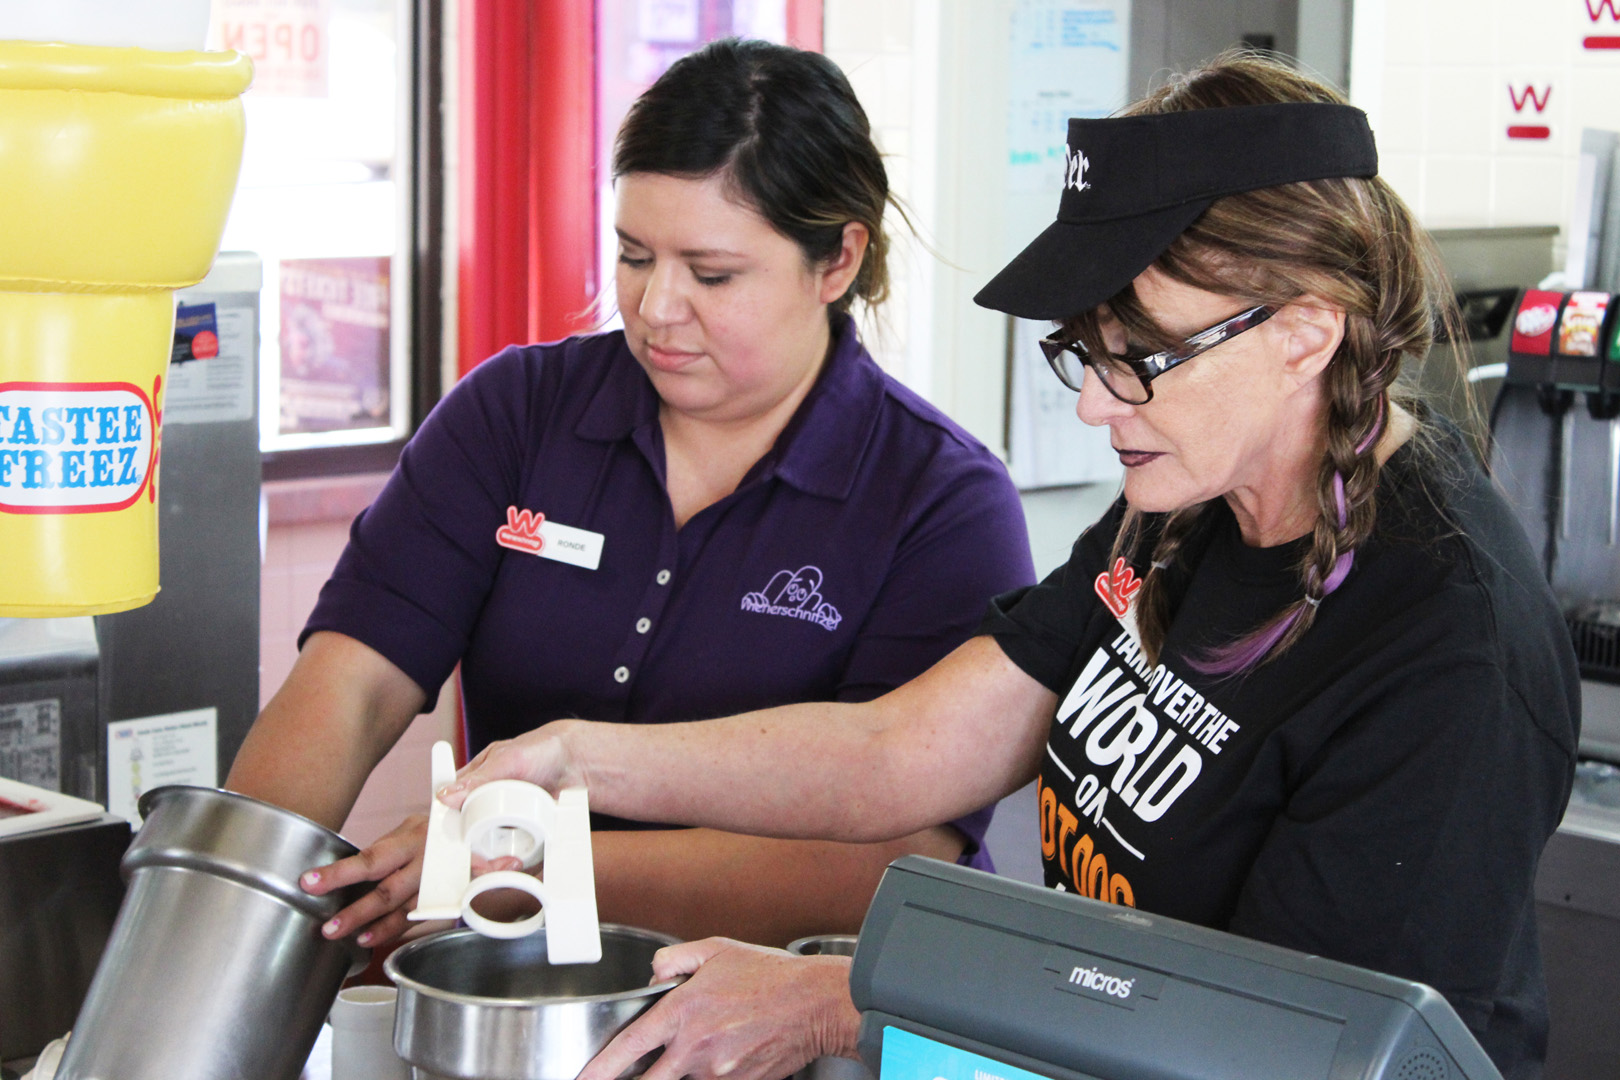 Cynthia learns a few things from Rhondelise, a fellow Weinerschnitzel employee, at the Amarillo, Texas location.